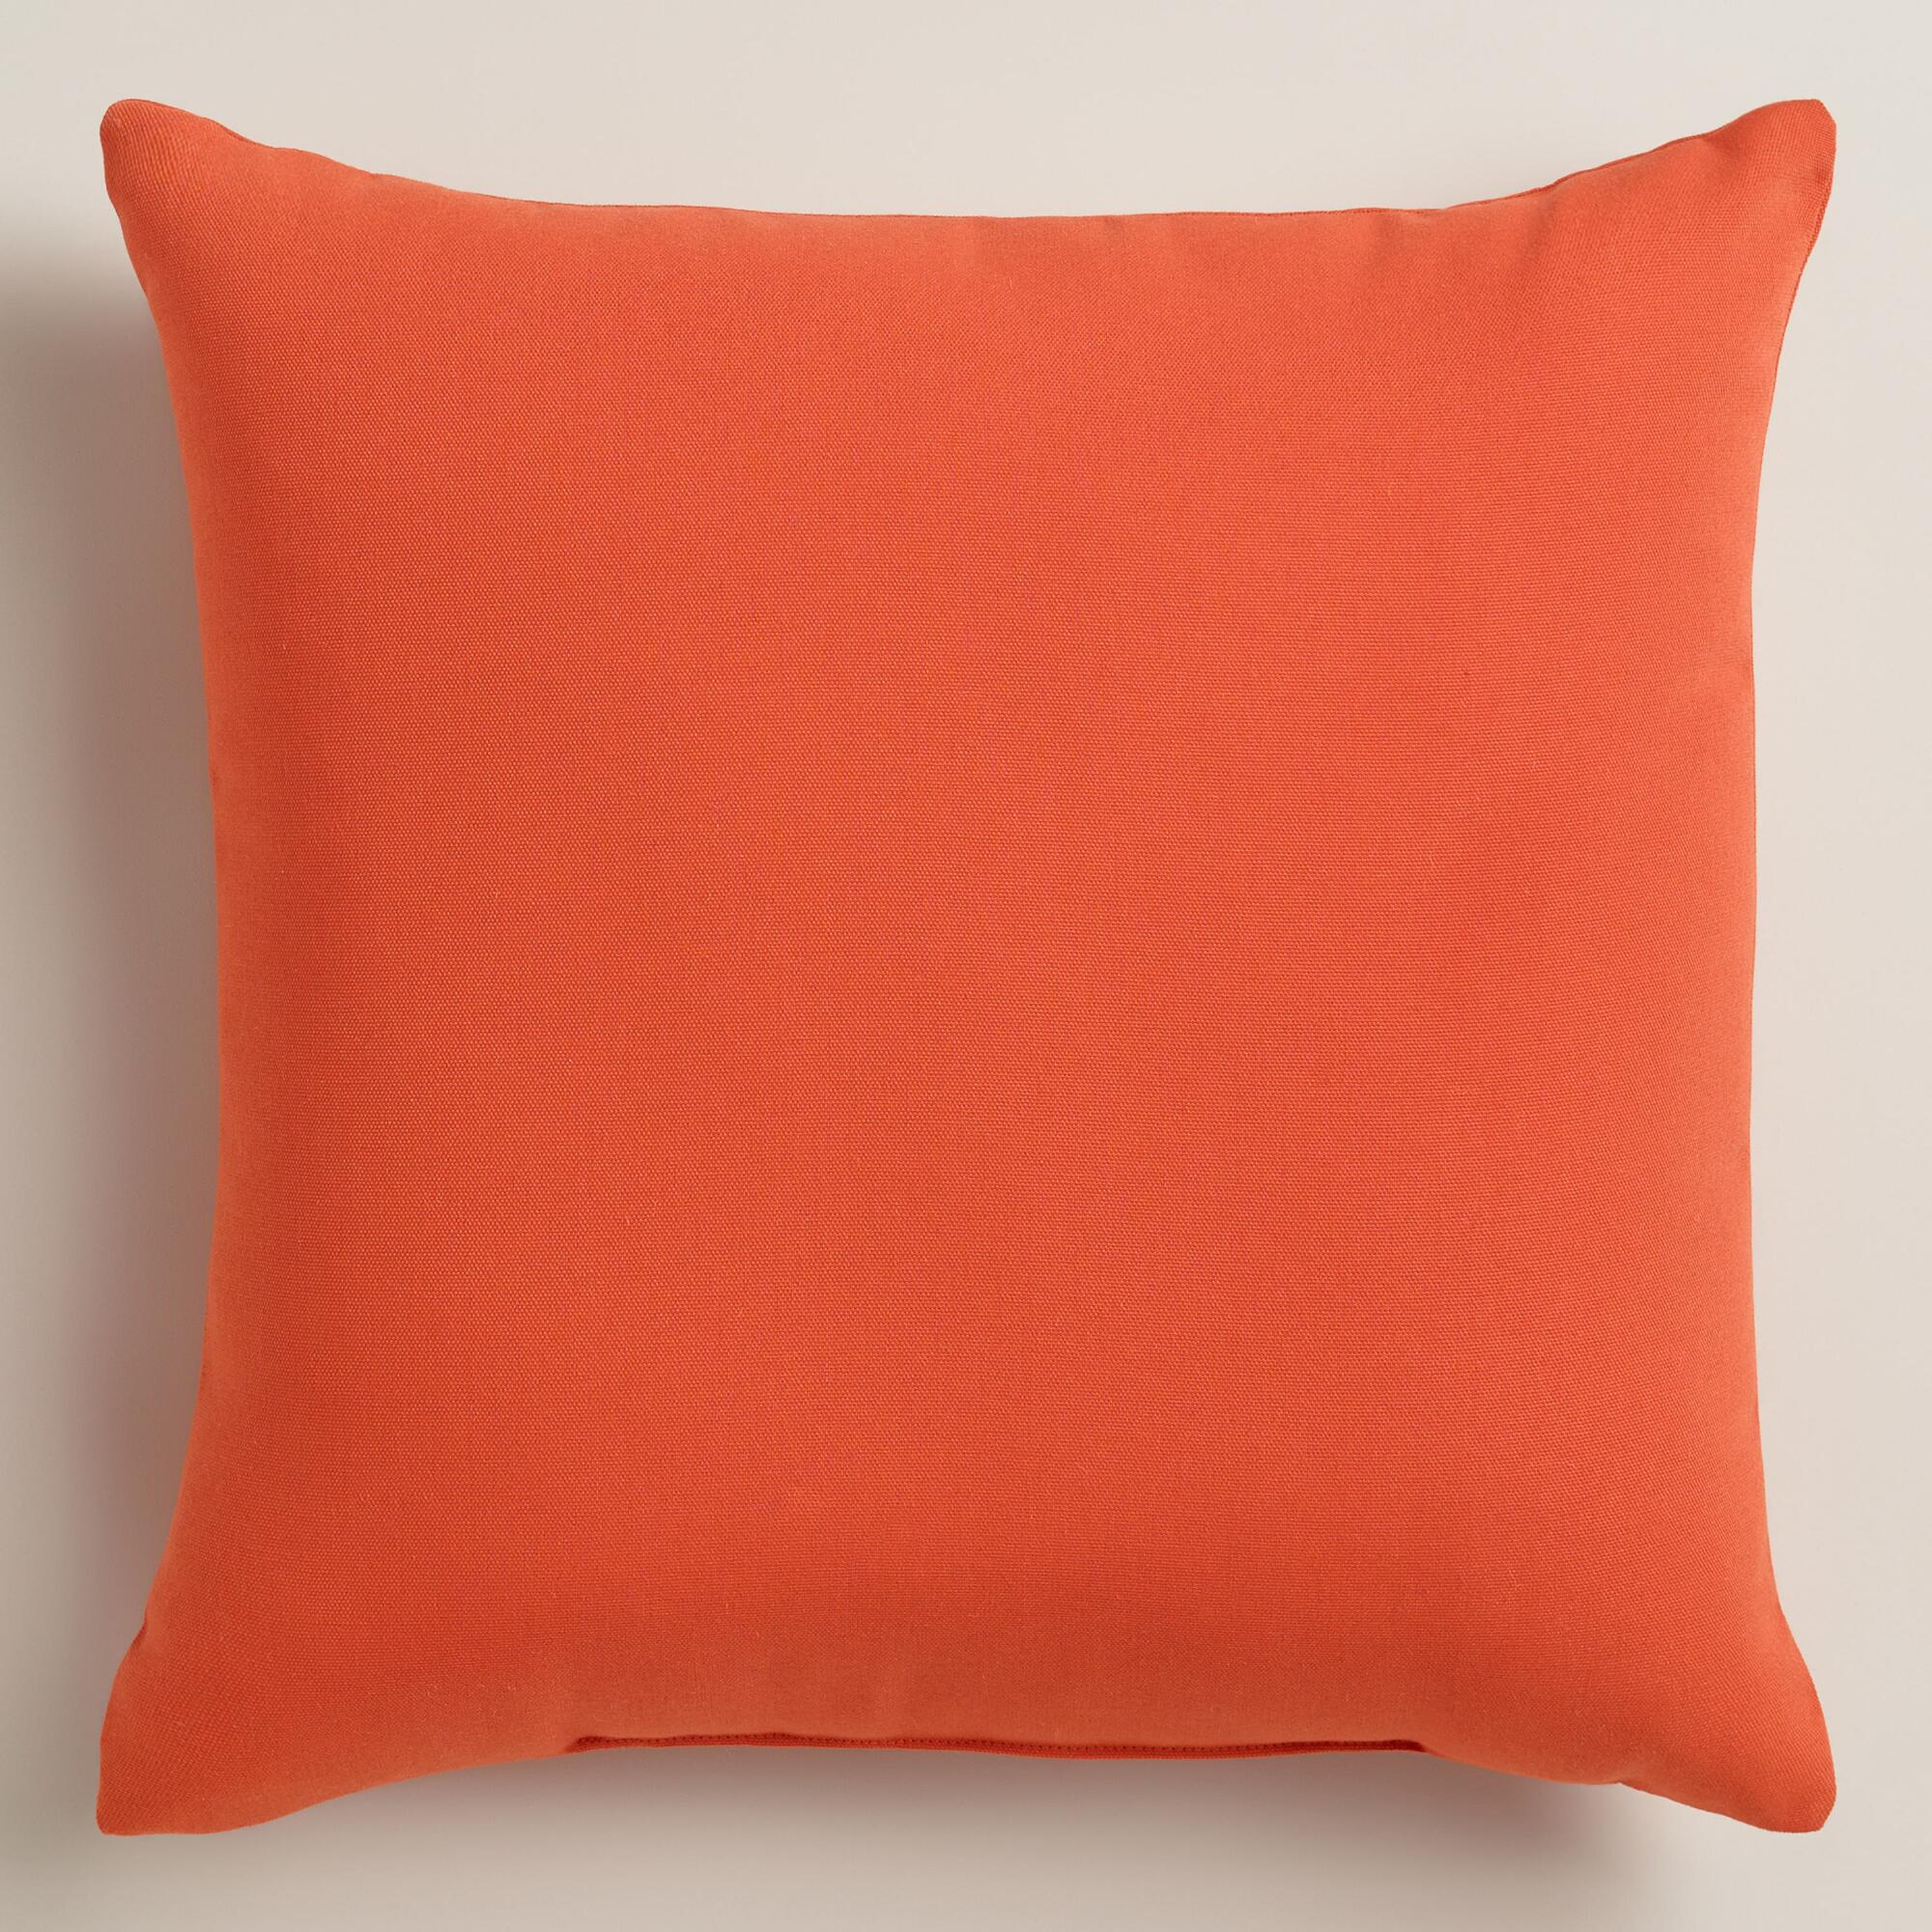 luxury images of orange outdoor pillows